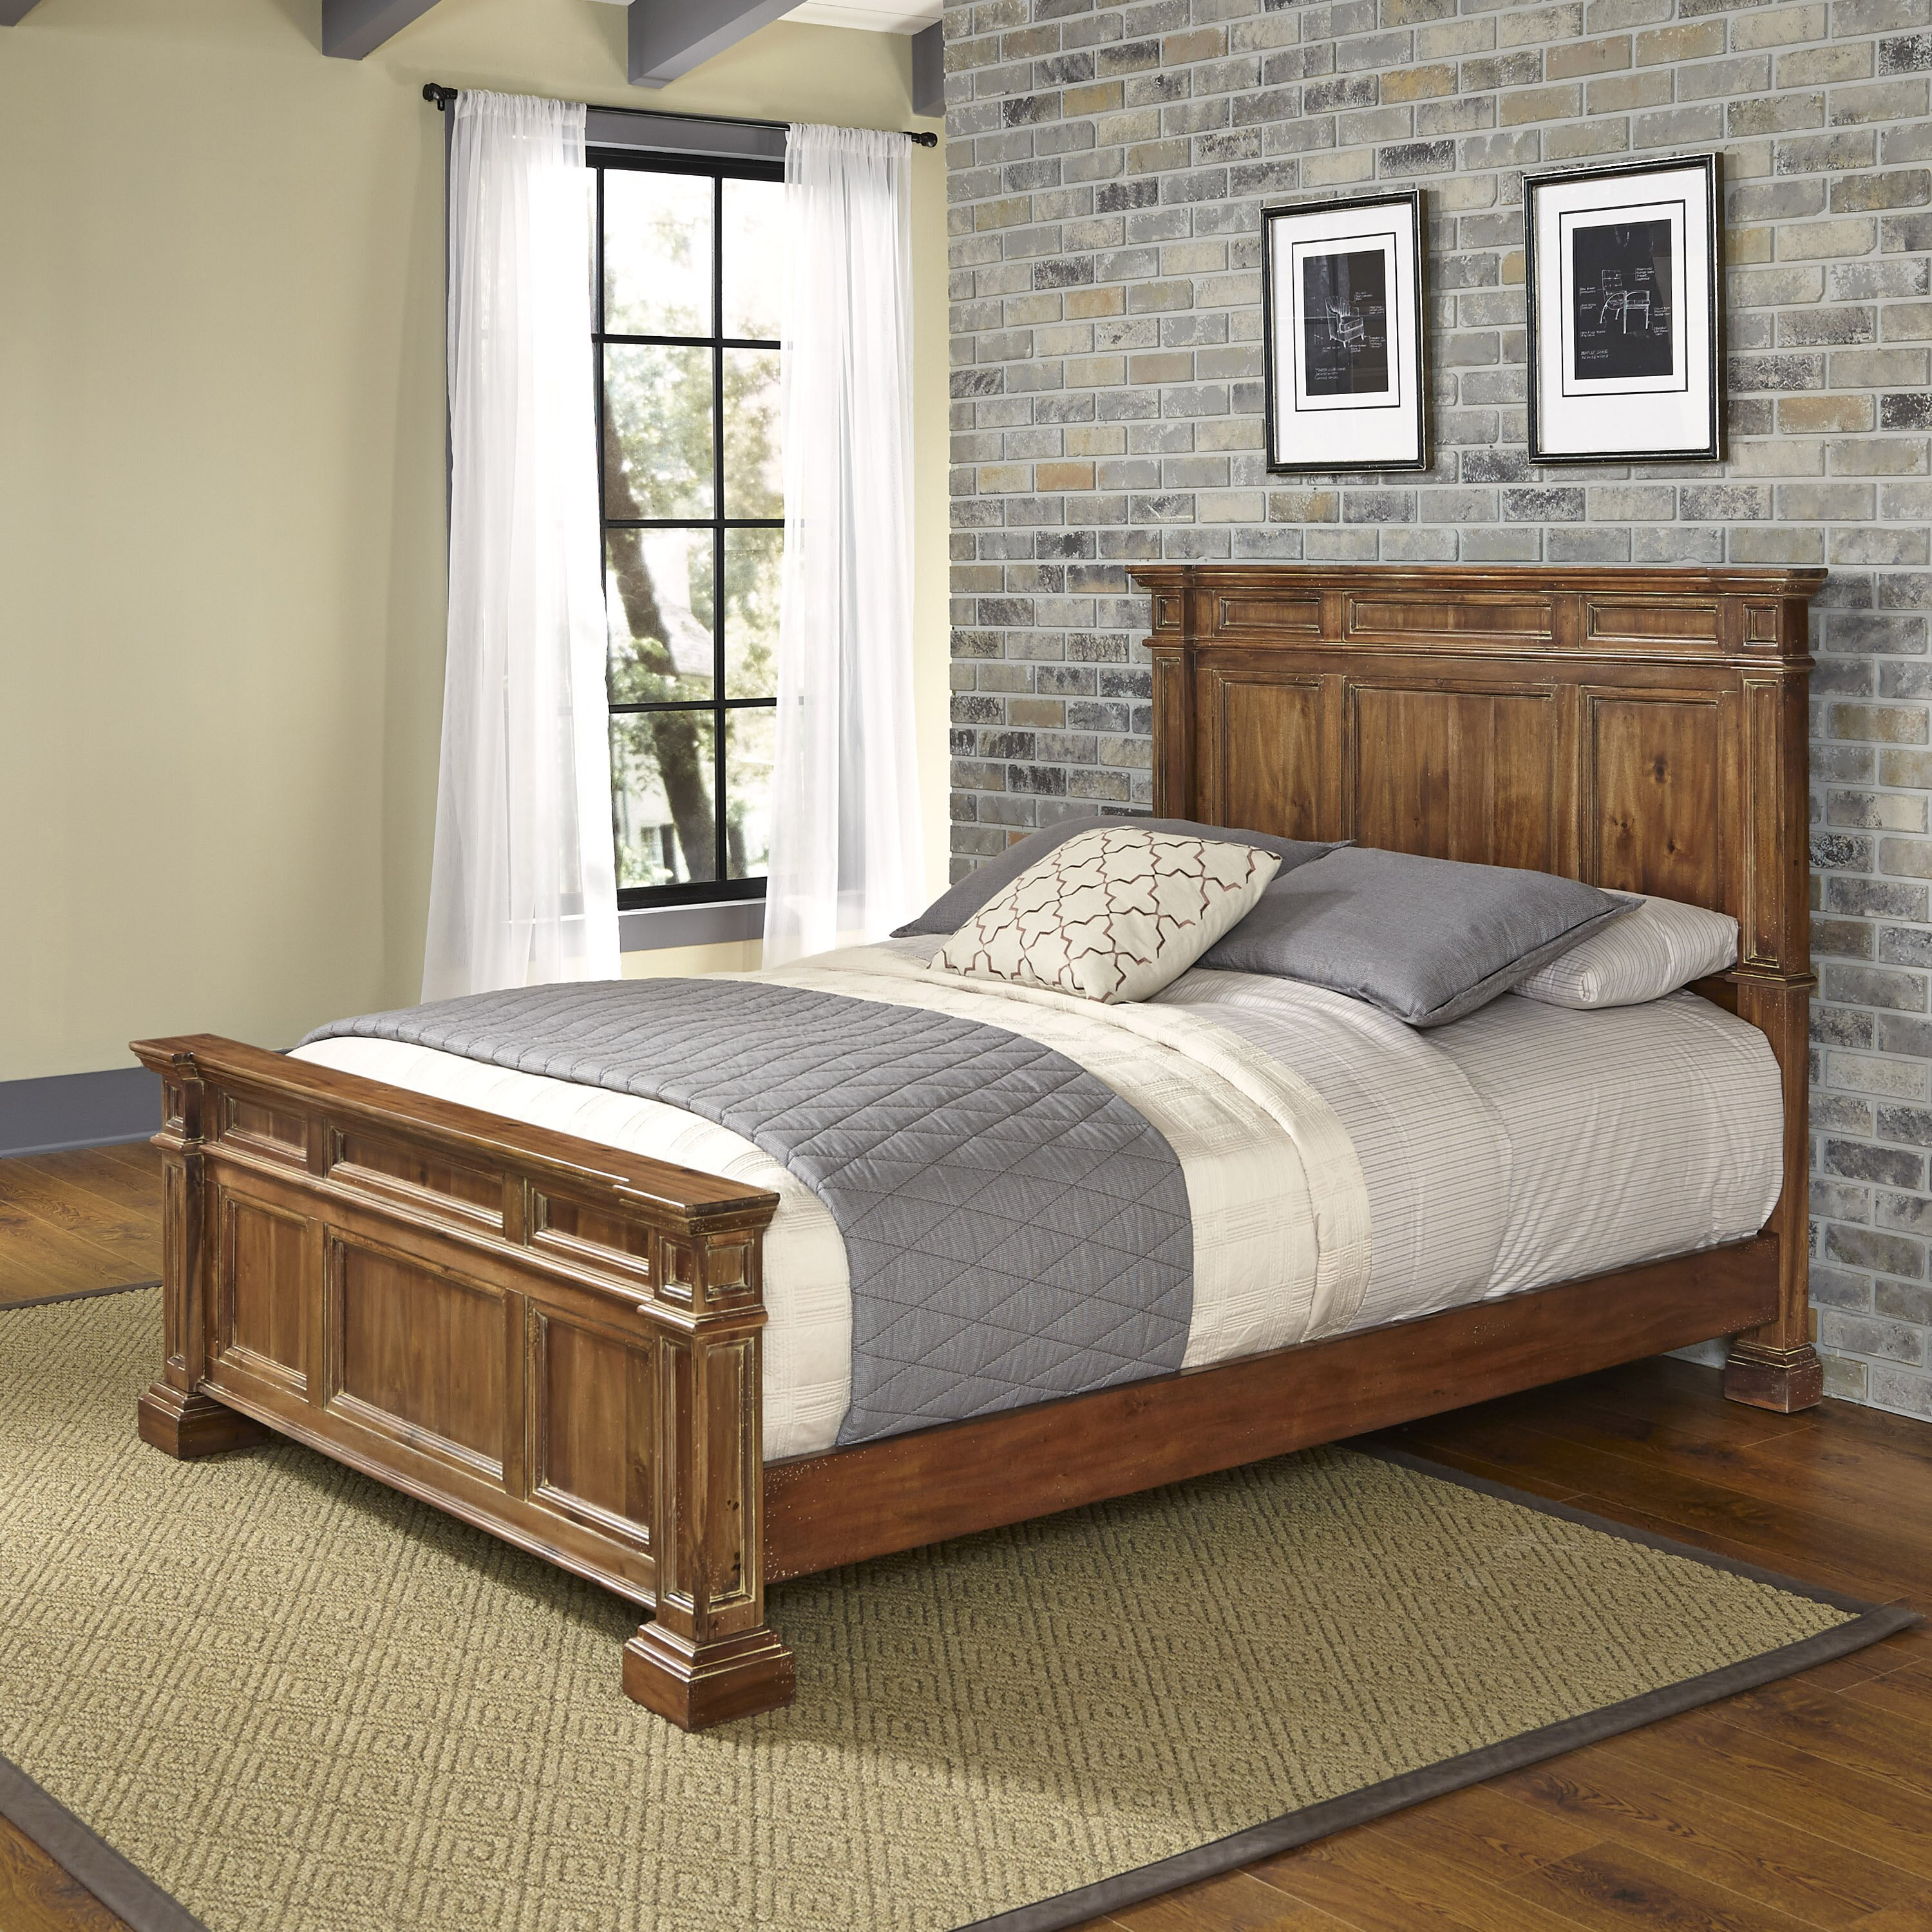 Home styles americana vintage panel bed reviews wayfair for Americana style house